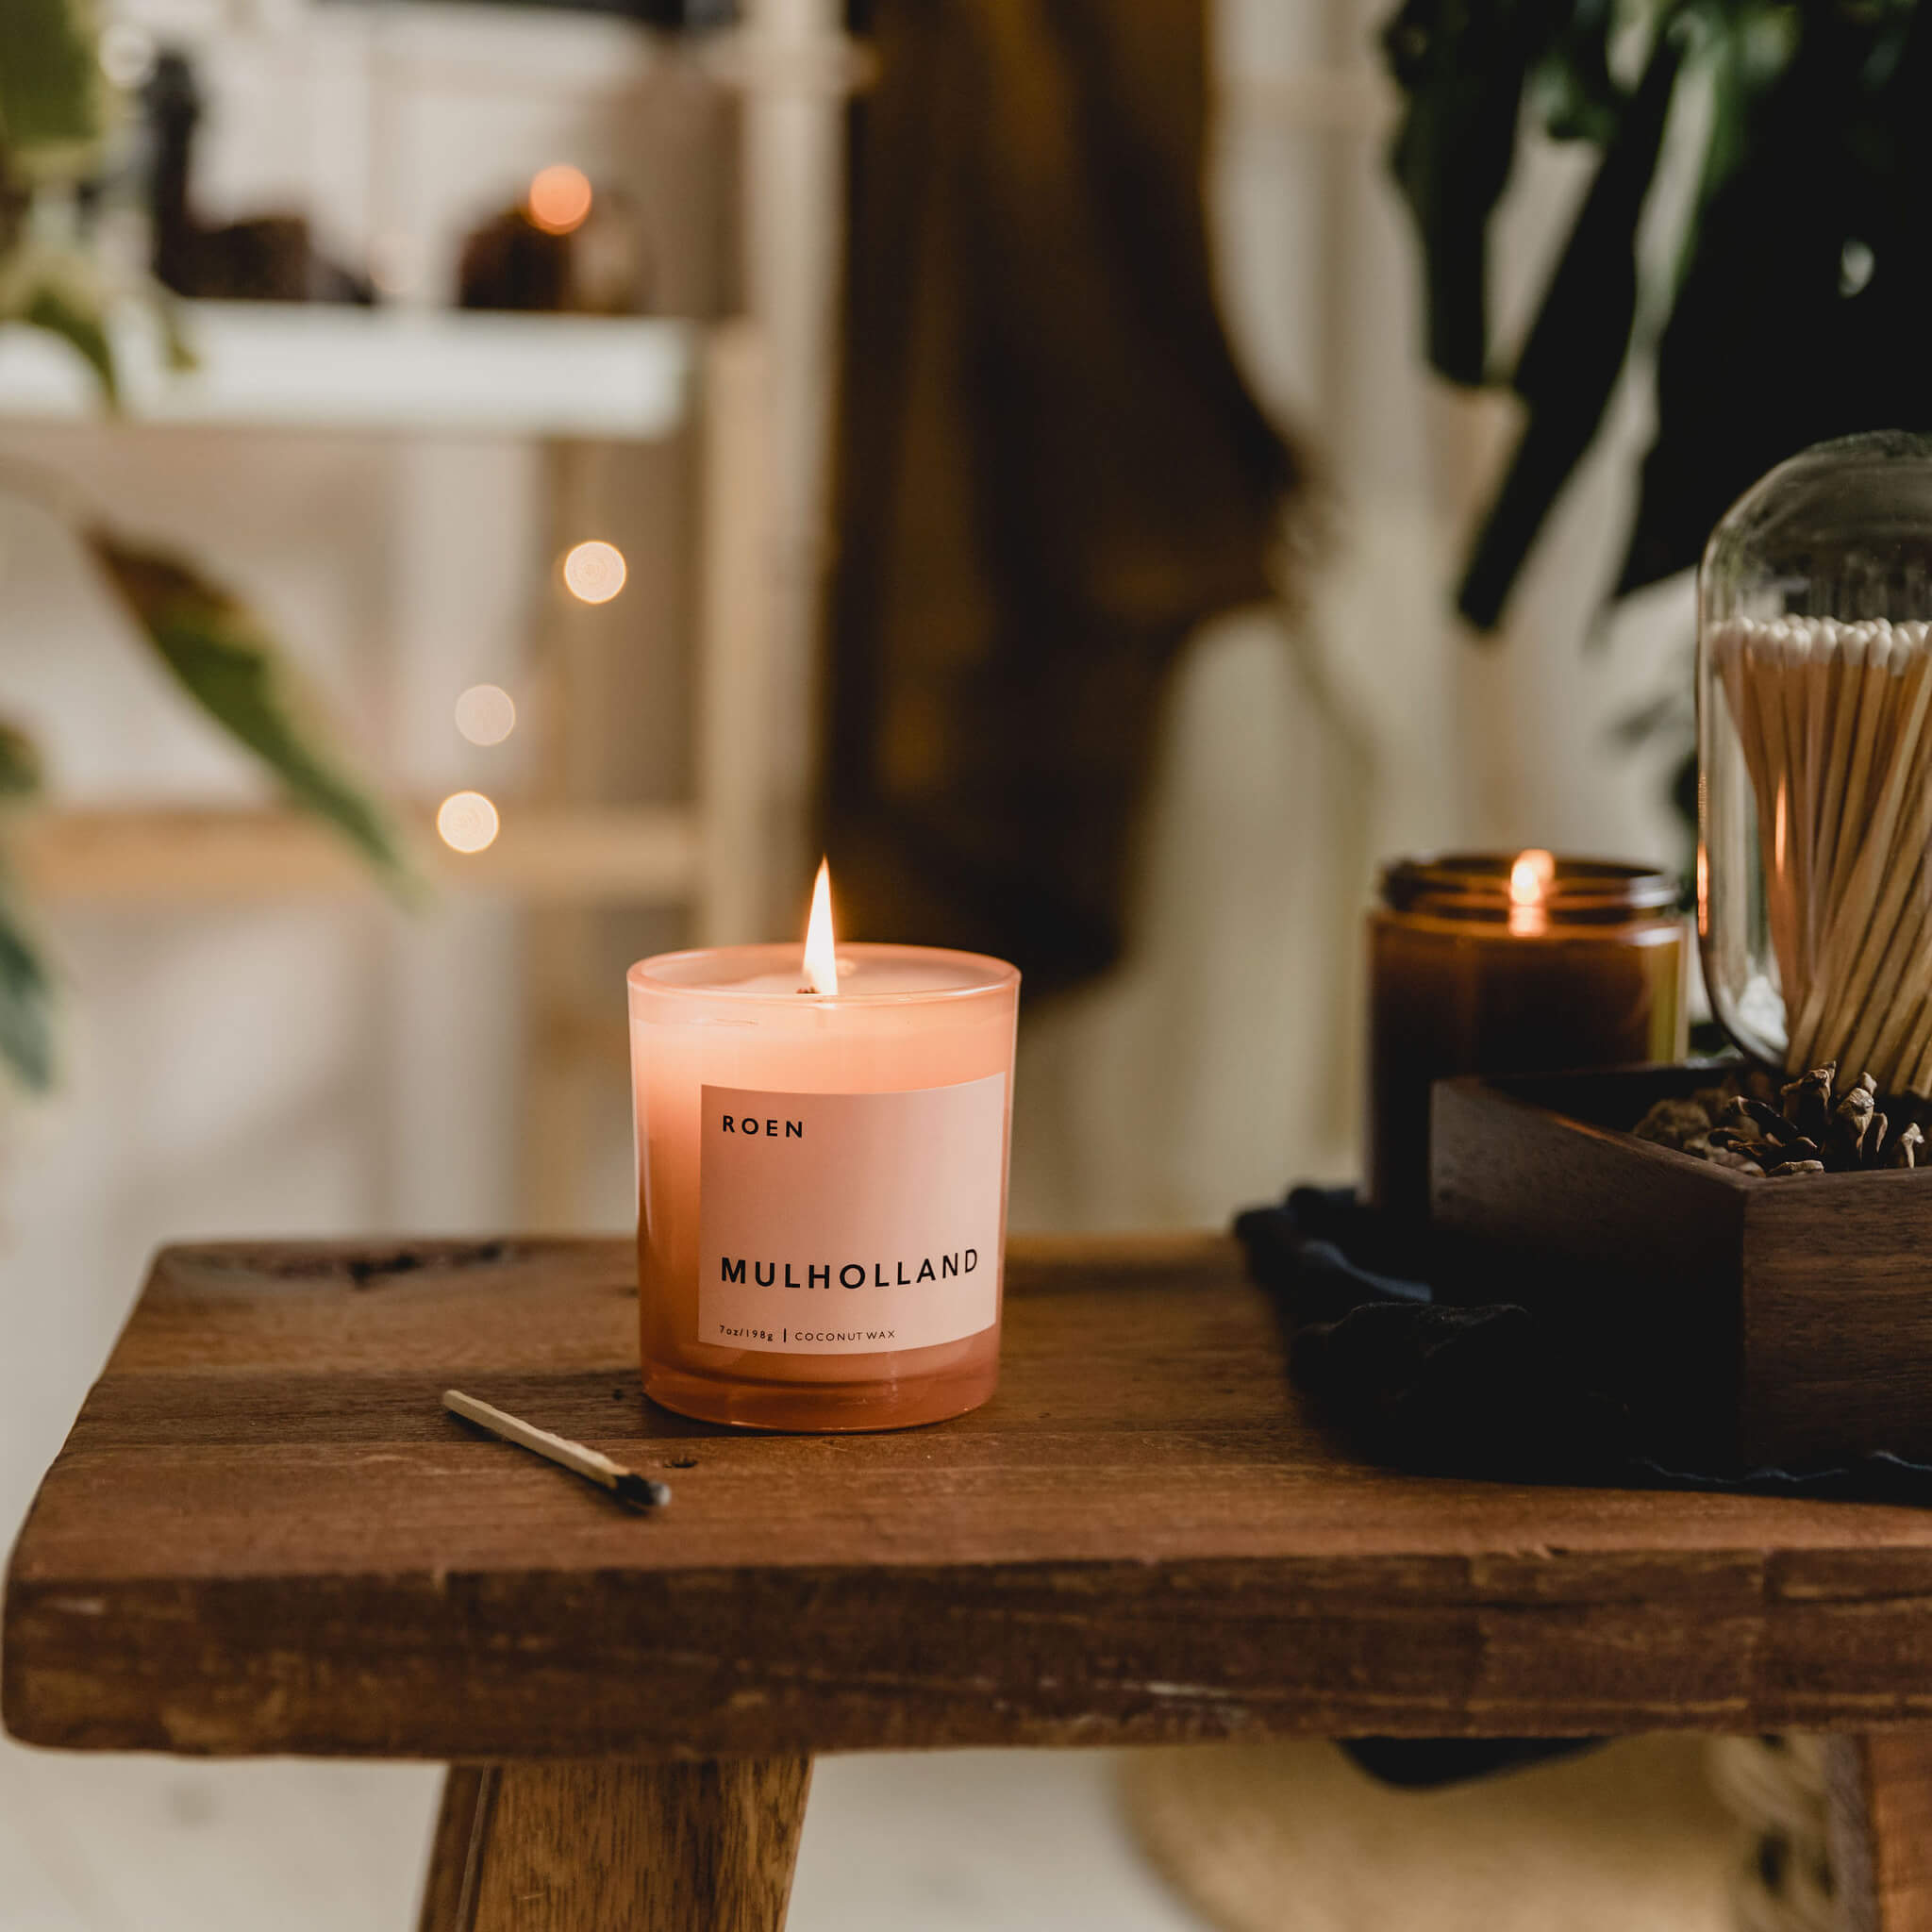 Mulholland Candle by R O E N